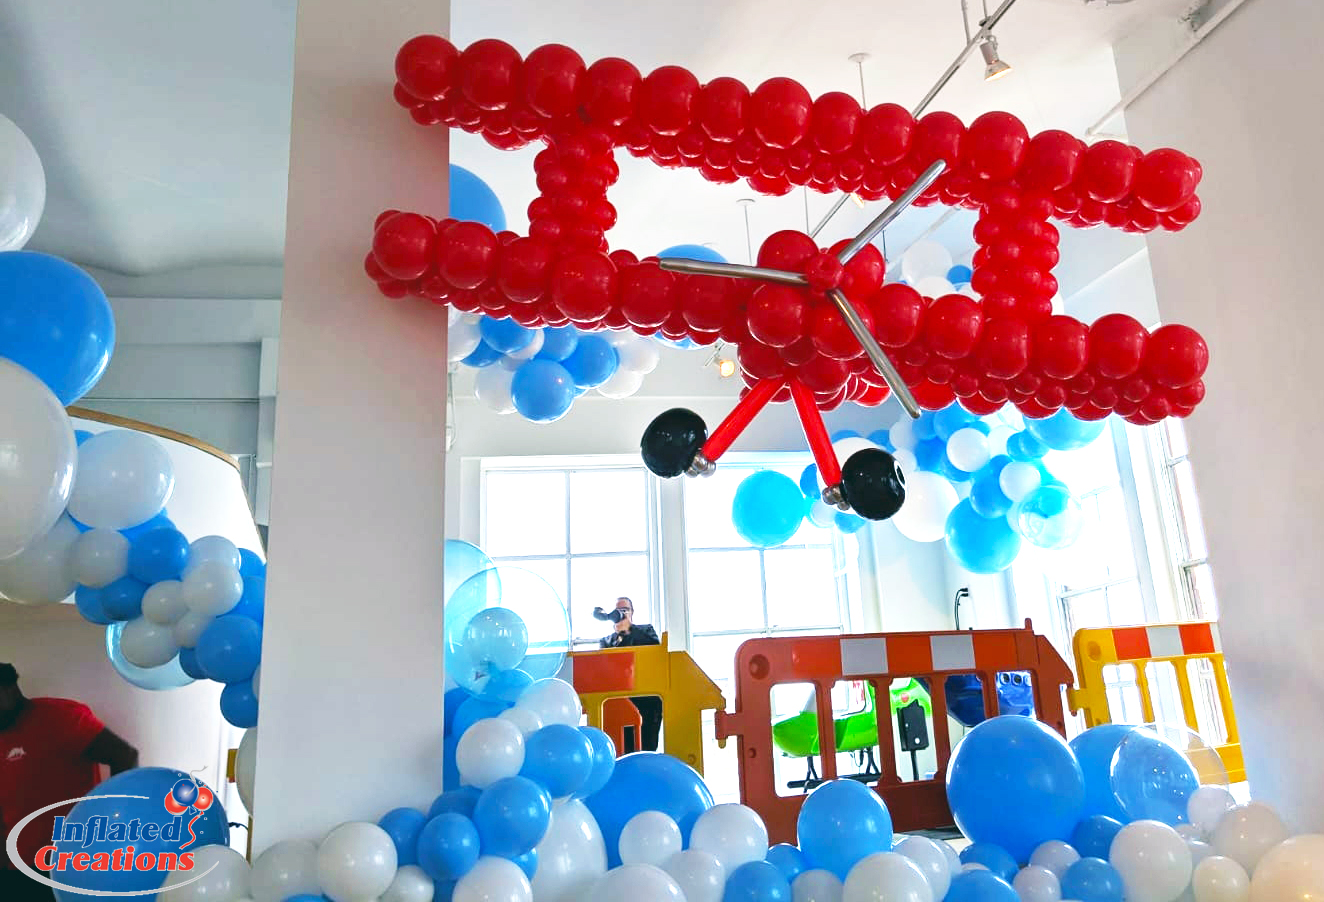 Inflated Creations   Ideas that Fly!   Learn More